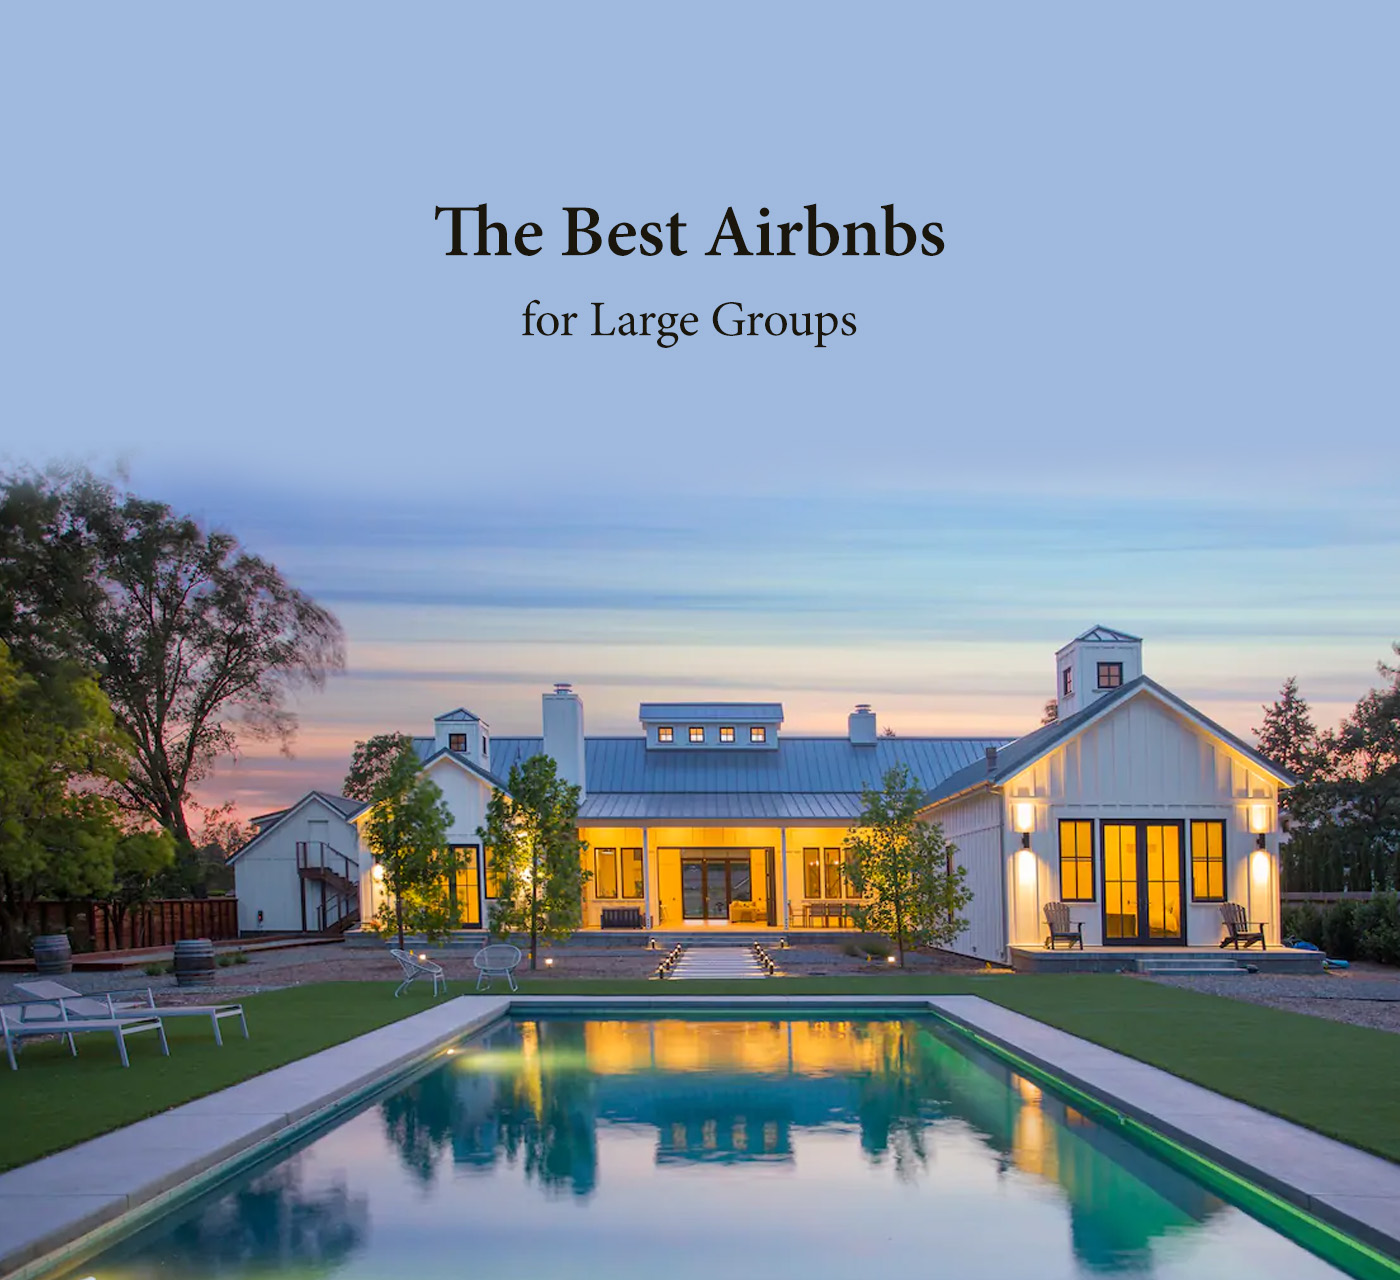 Best airbnbs for large groups